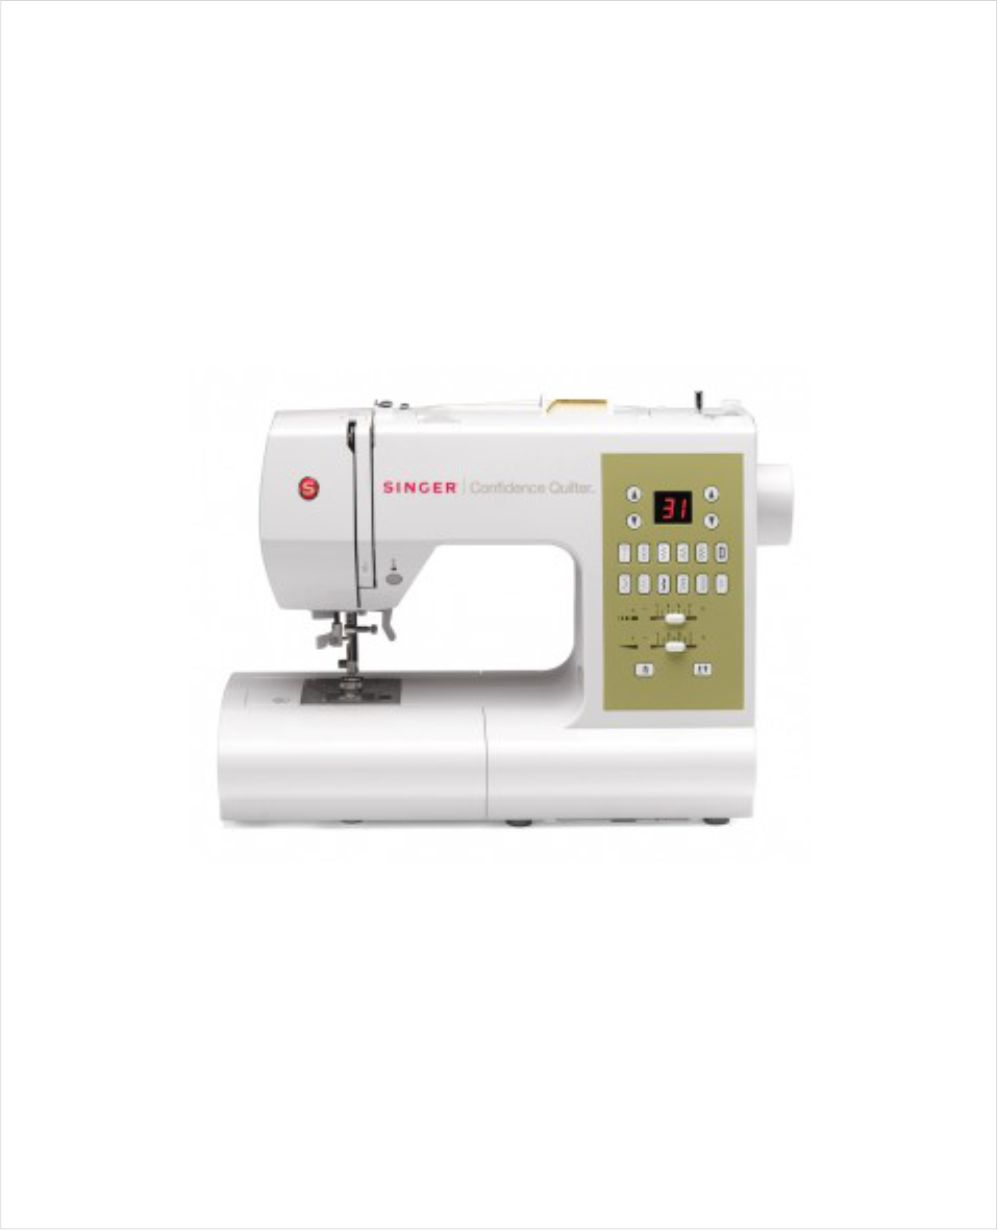 singer advanced sewing machine